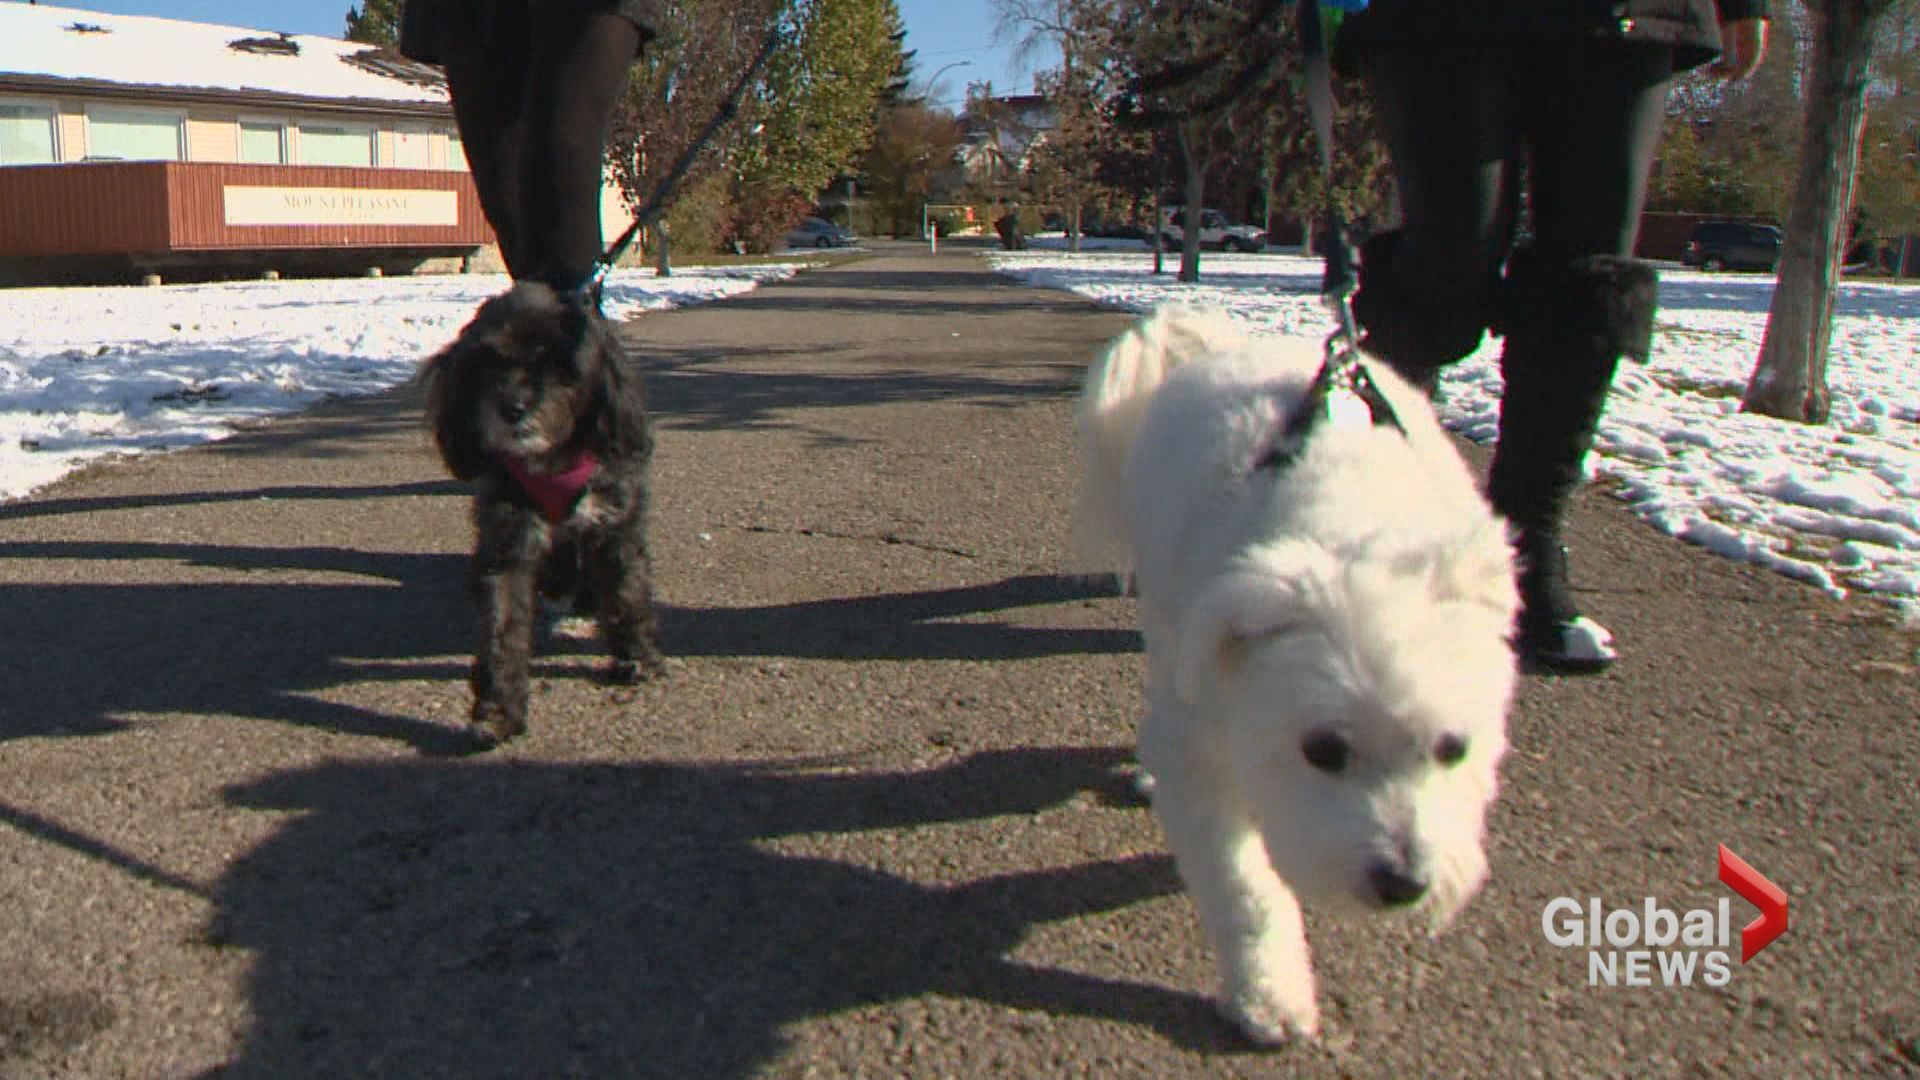 Alberta animal rescue group helps aging animals: 'the most rewarding thing I've ever done'